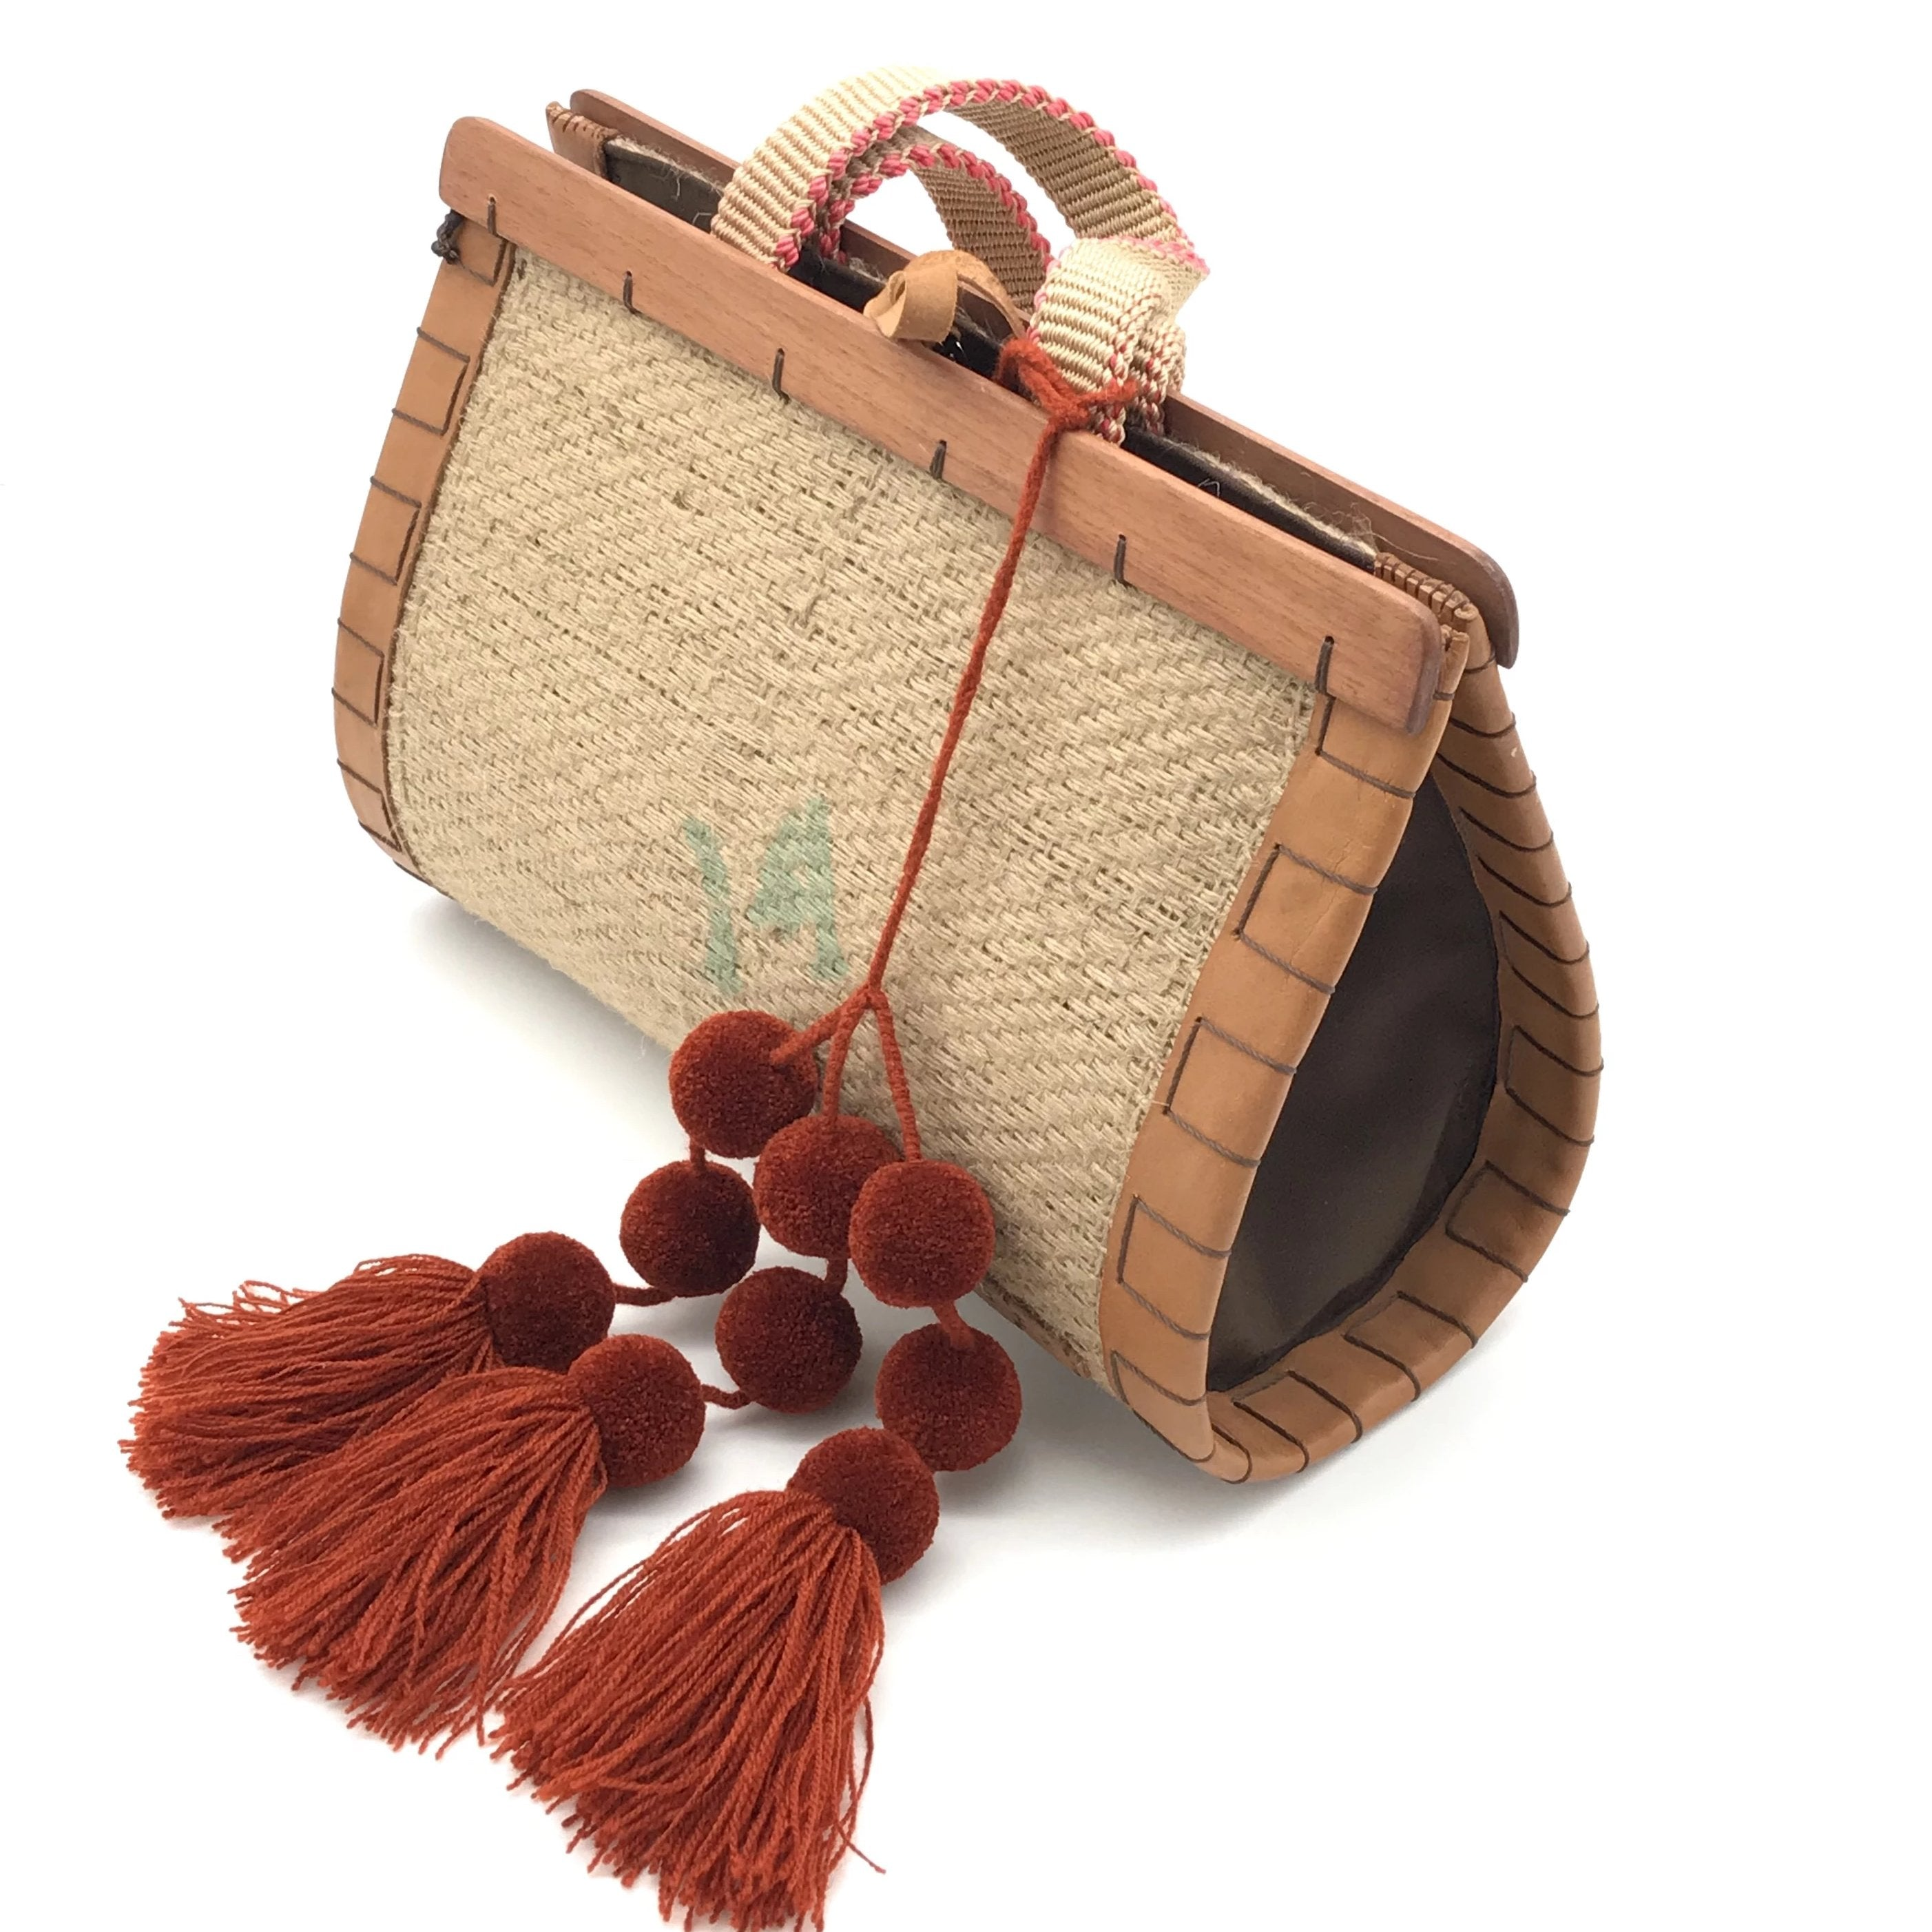 Dutzi Medium Drop Shaped Burlap Handle Bag W/ Pom Poms